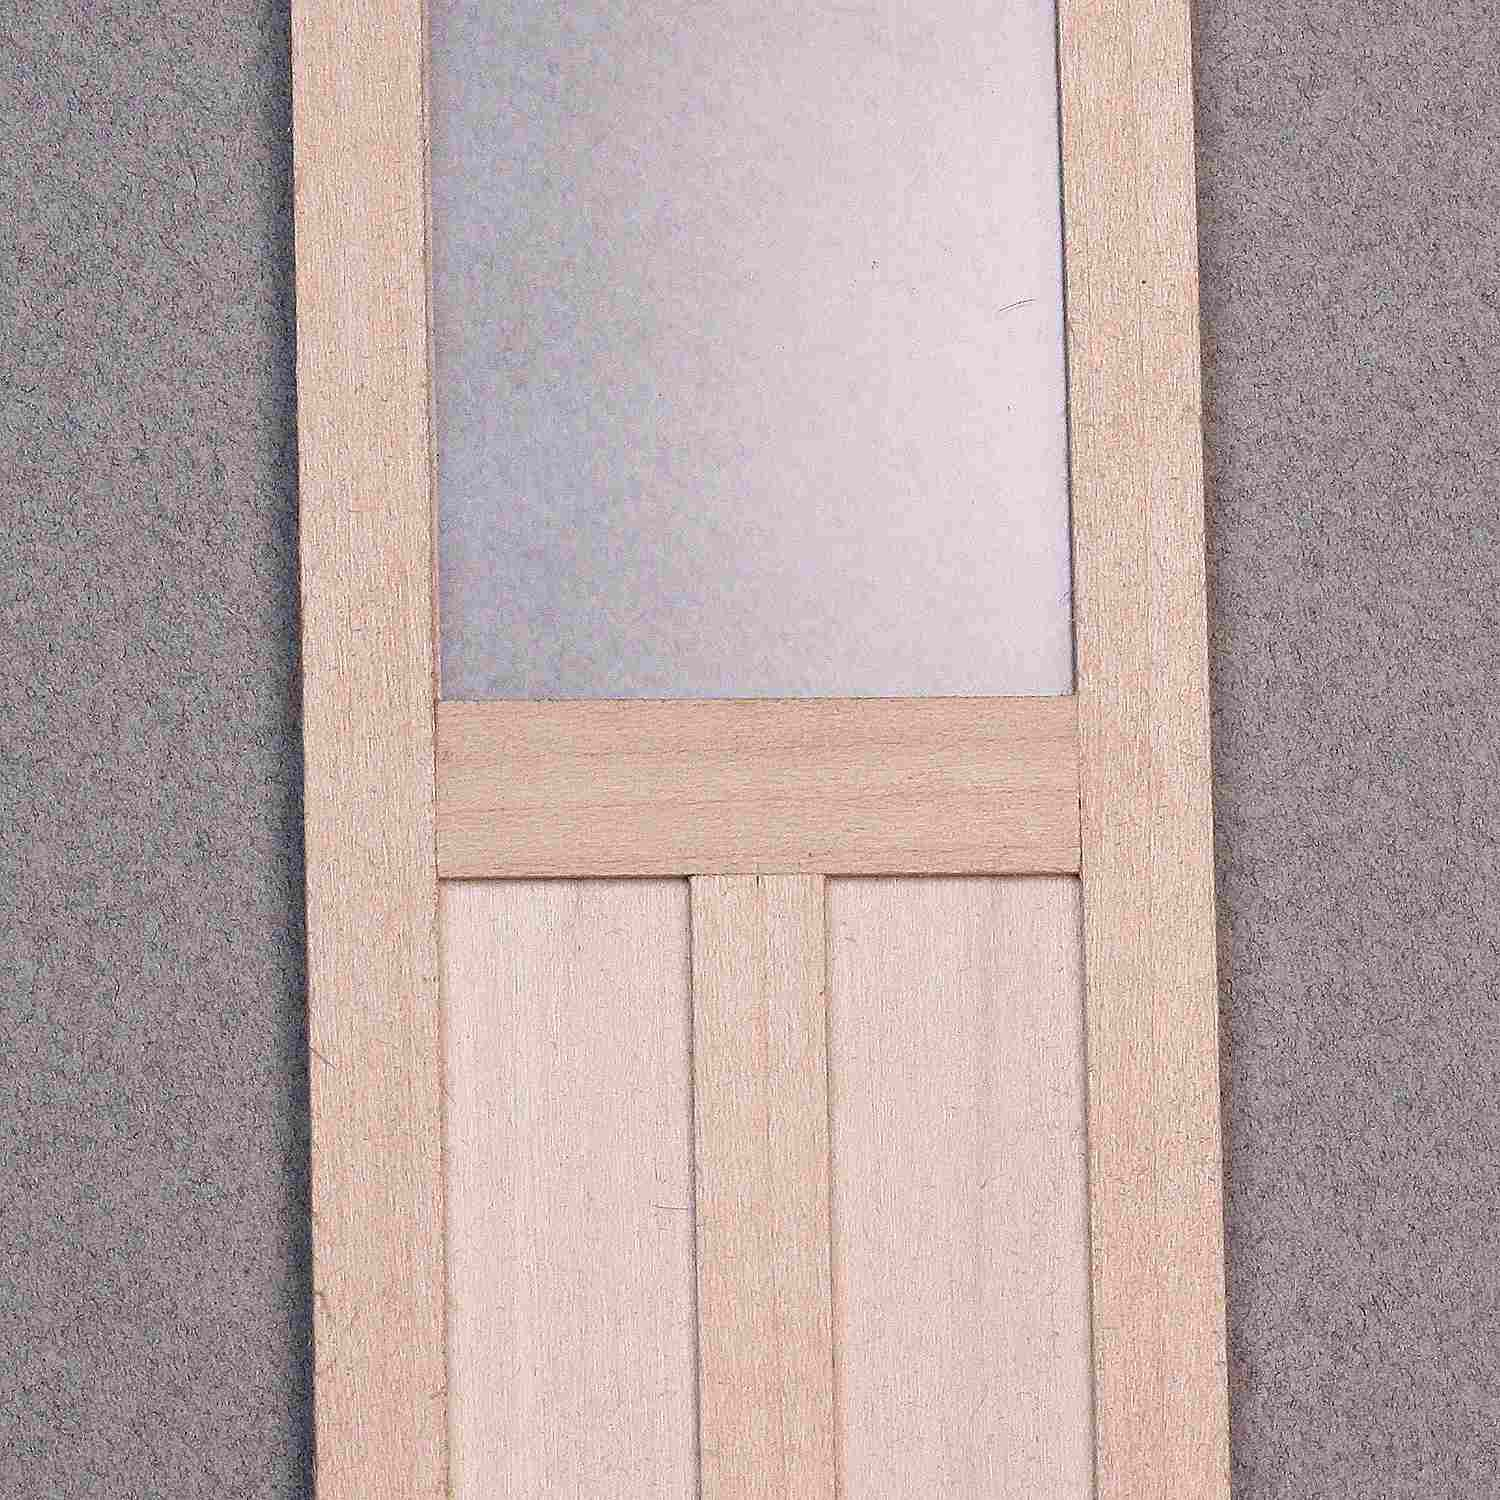 Simple dolls house door with window and panel trim.